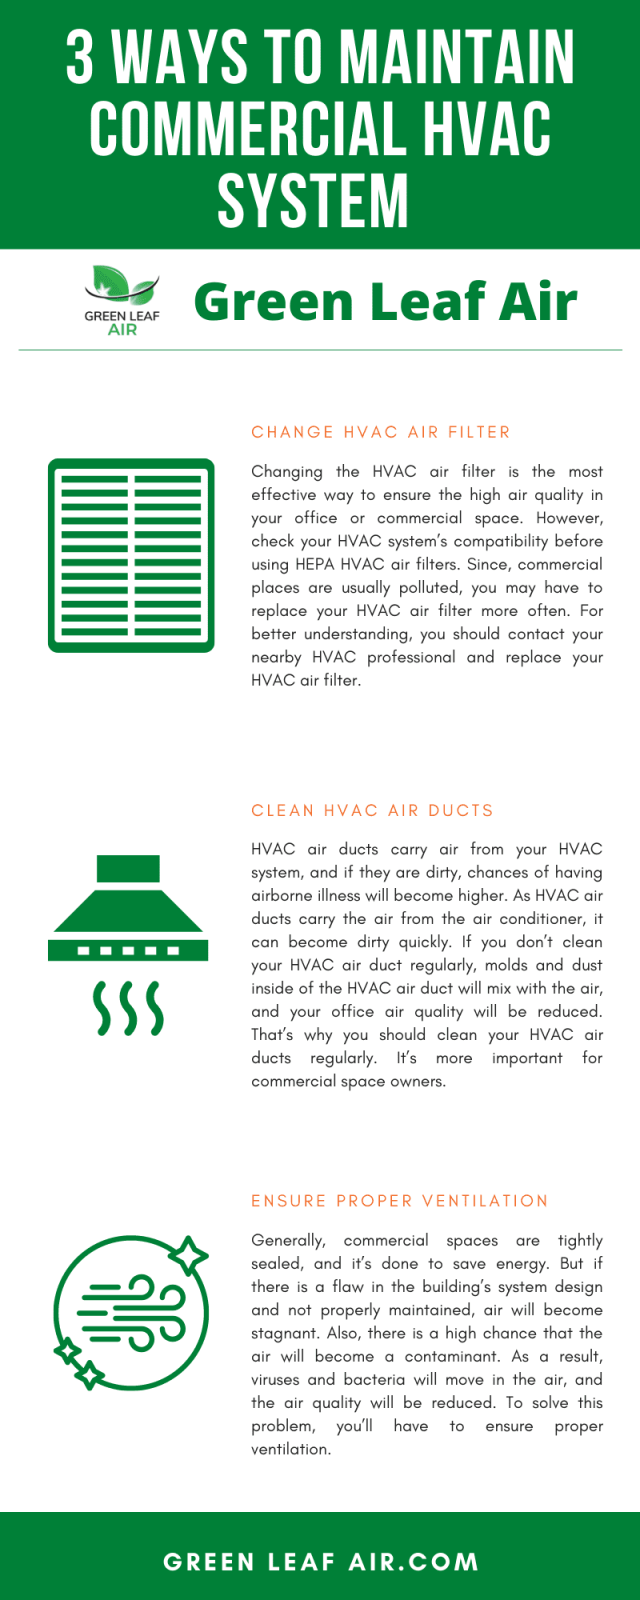 3 Ways to Maintain Commercial HVAC System